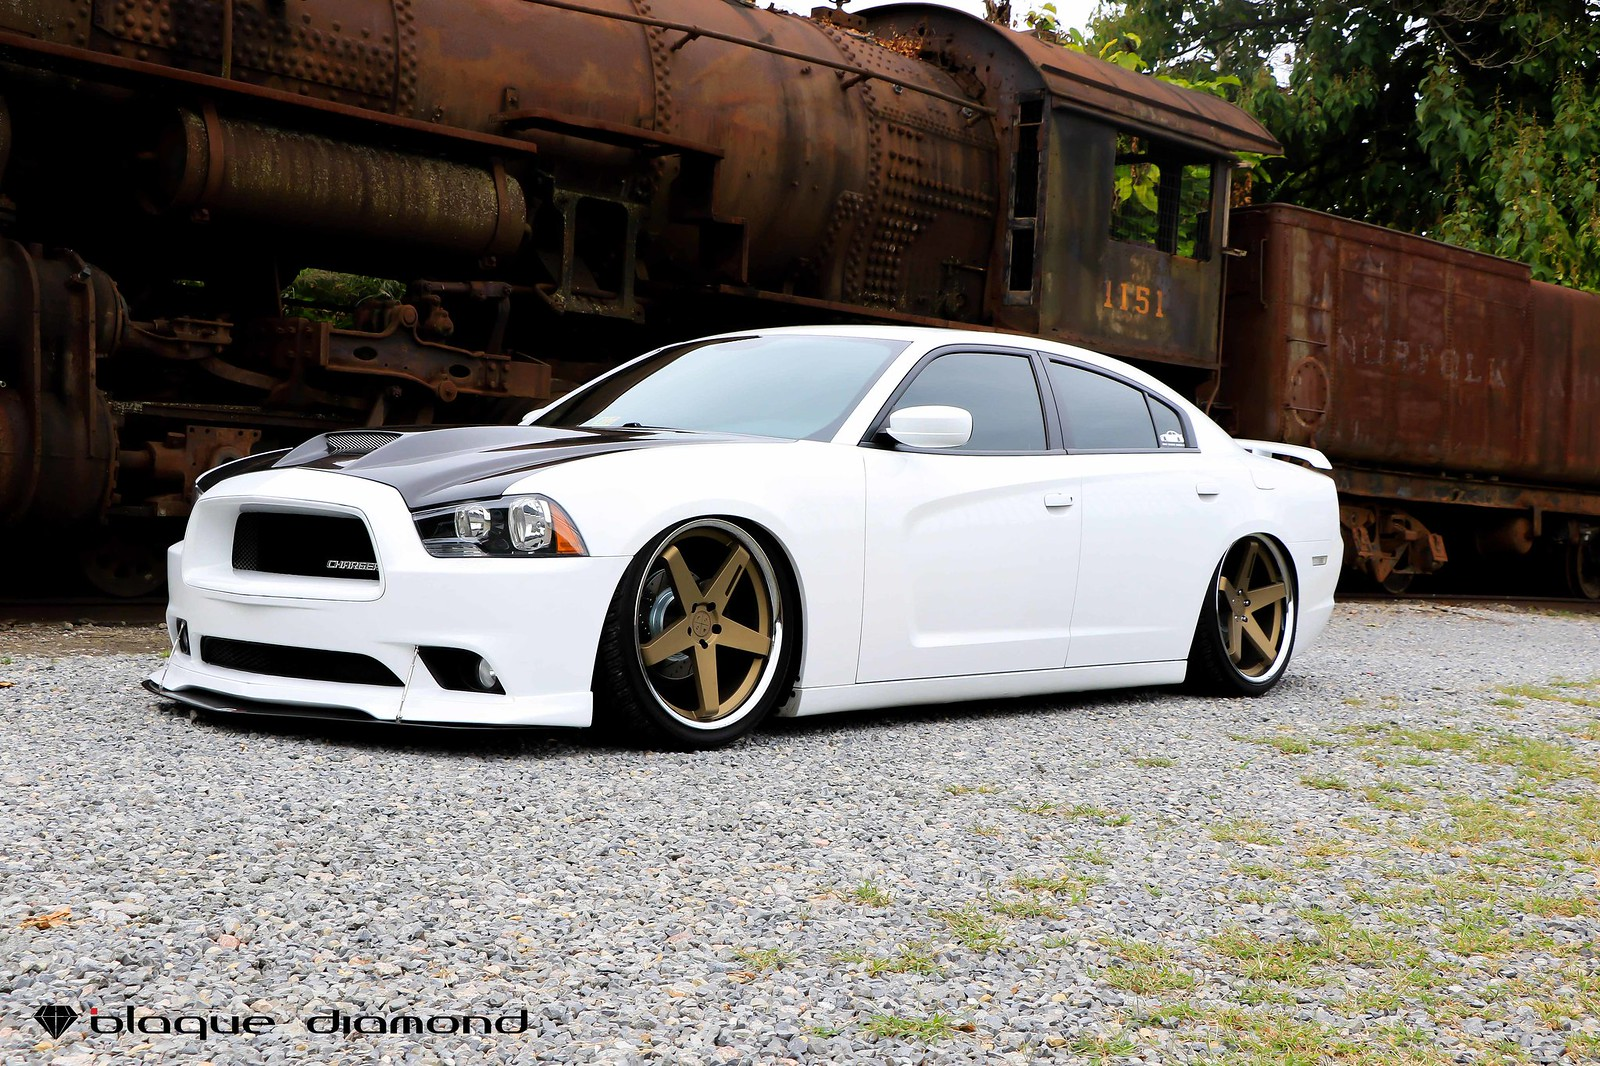 Dodge_Charger_White_BD21_22_inch_Bronze_Chrome_SS_Lip_Staggered-4